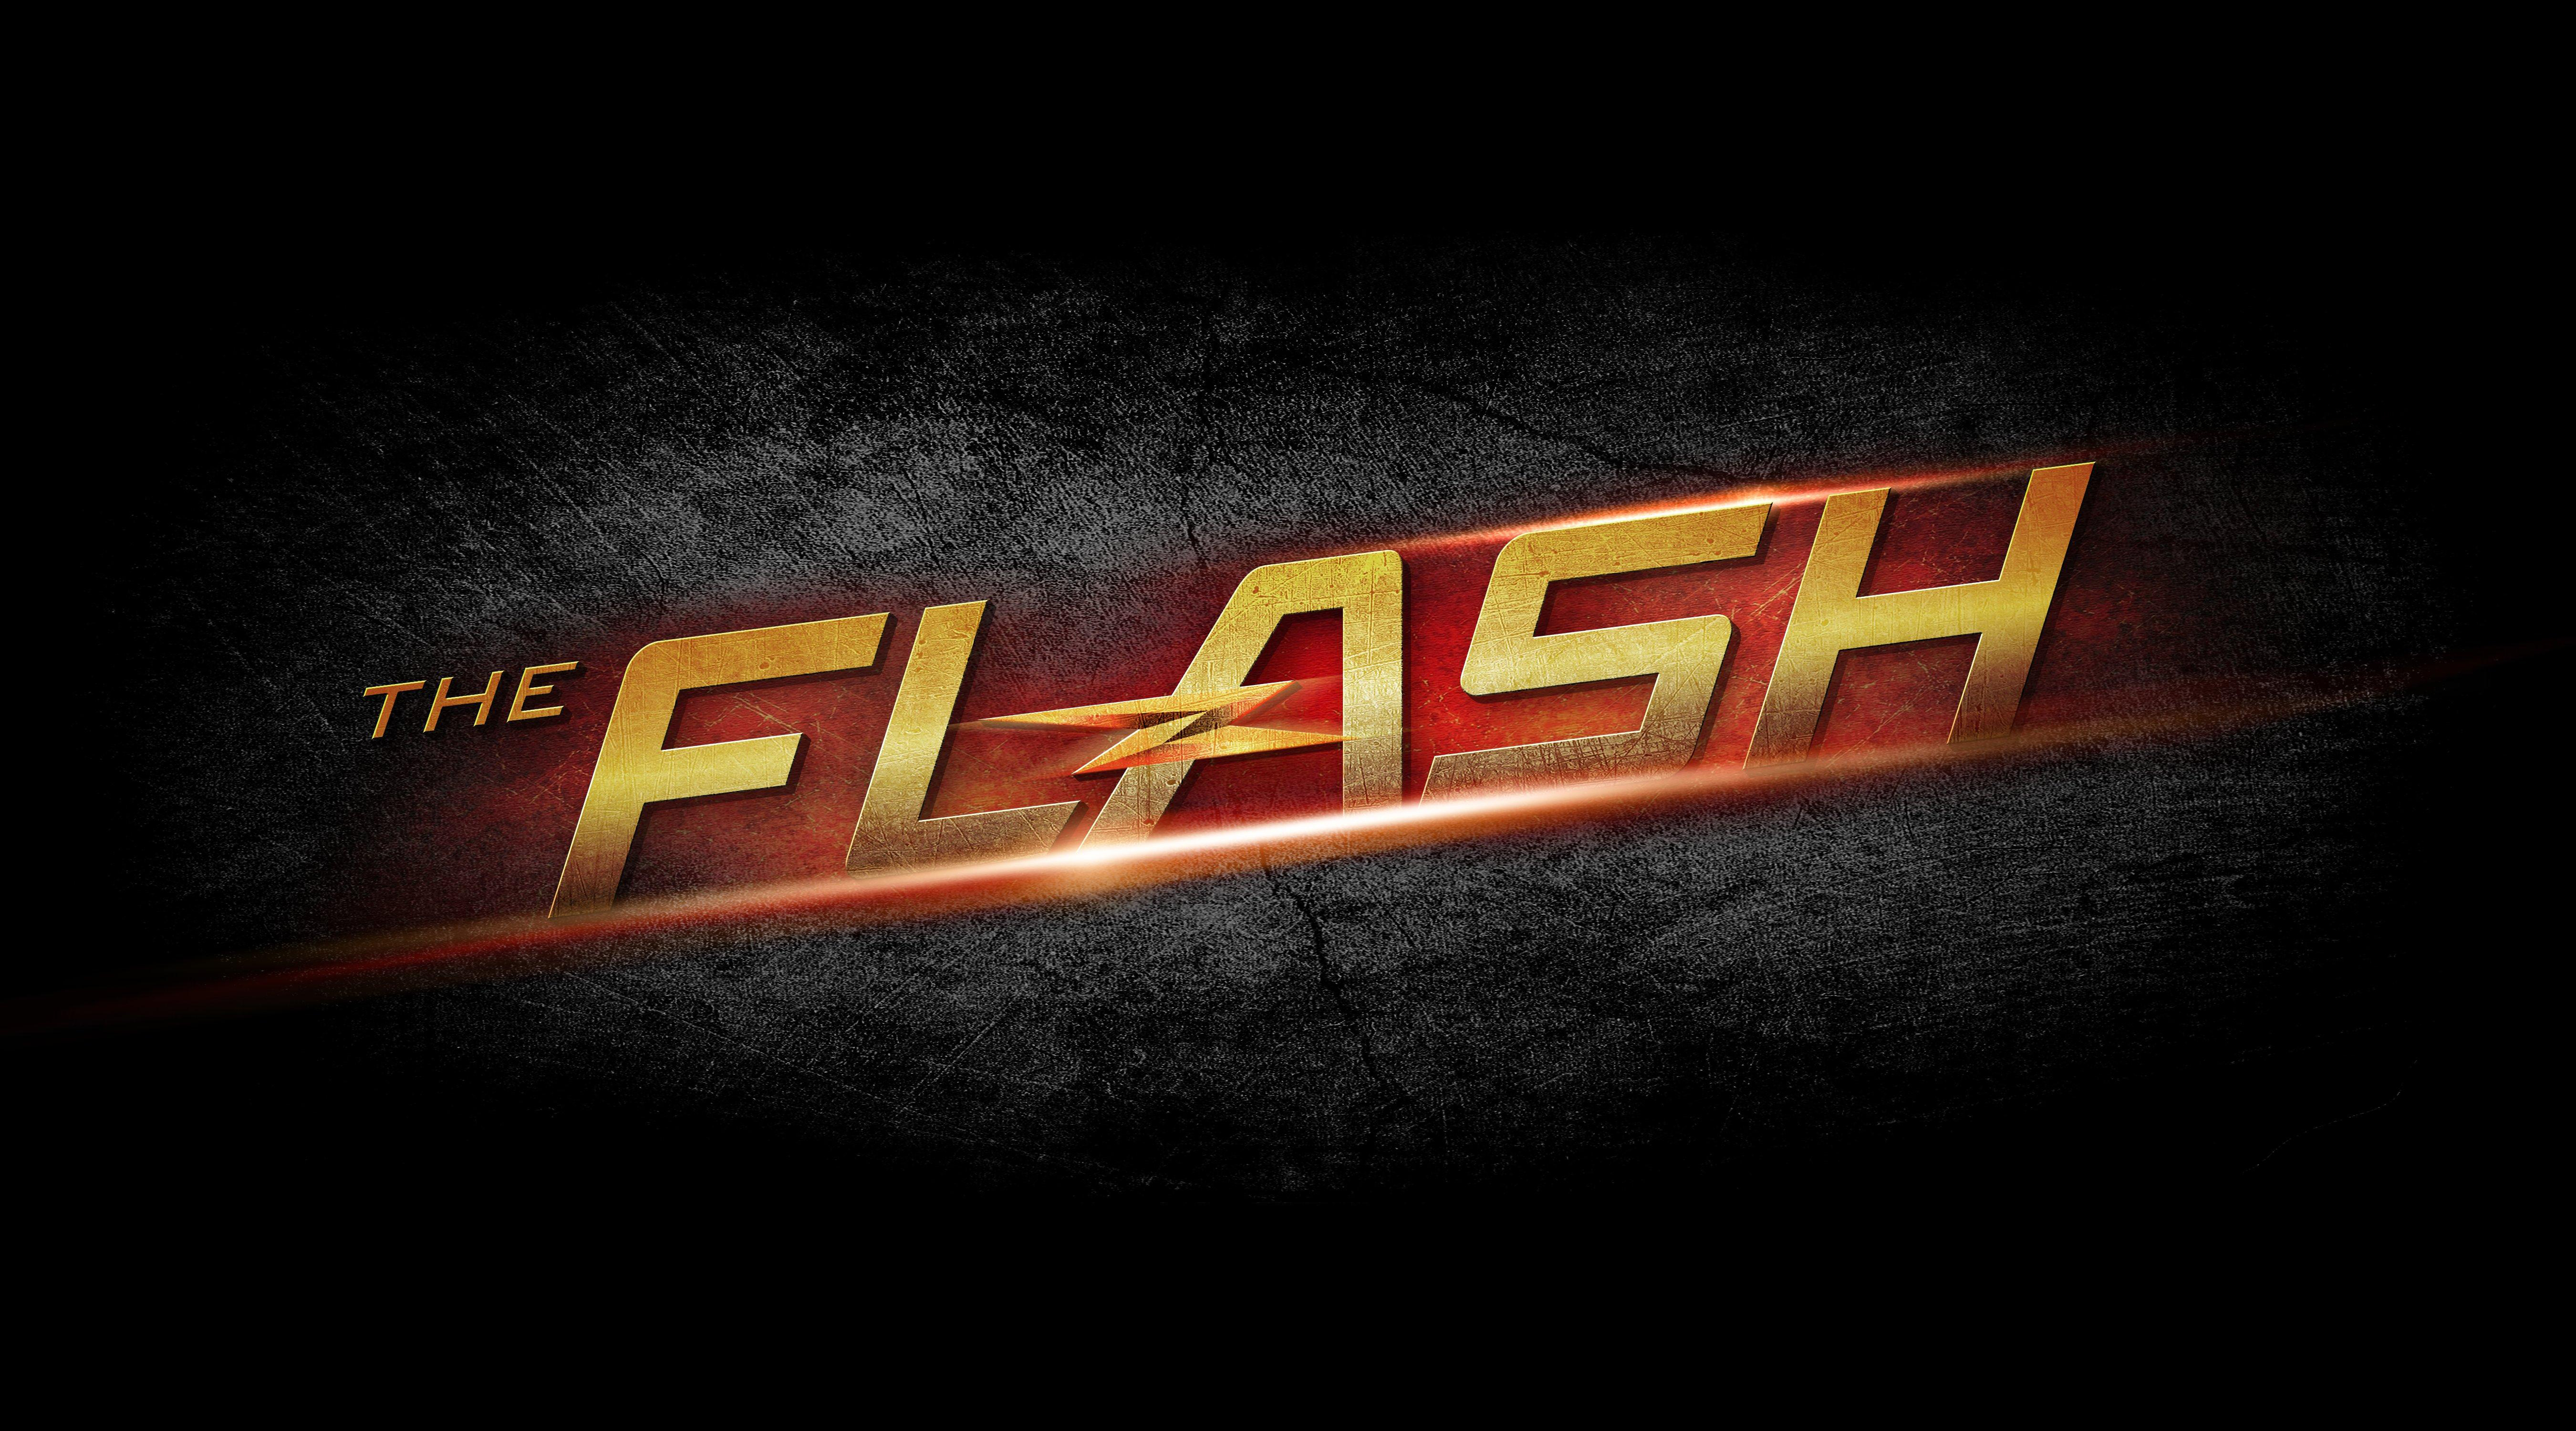 The Flash Hd Logo Hd Tv Shows 4k Wallpapers Images Backgrounds